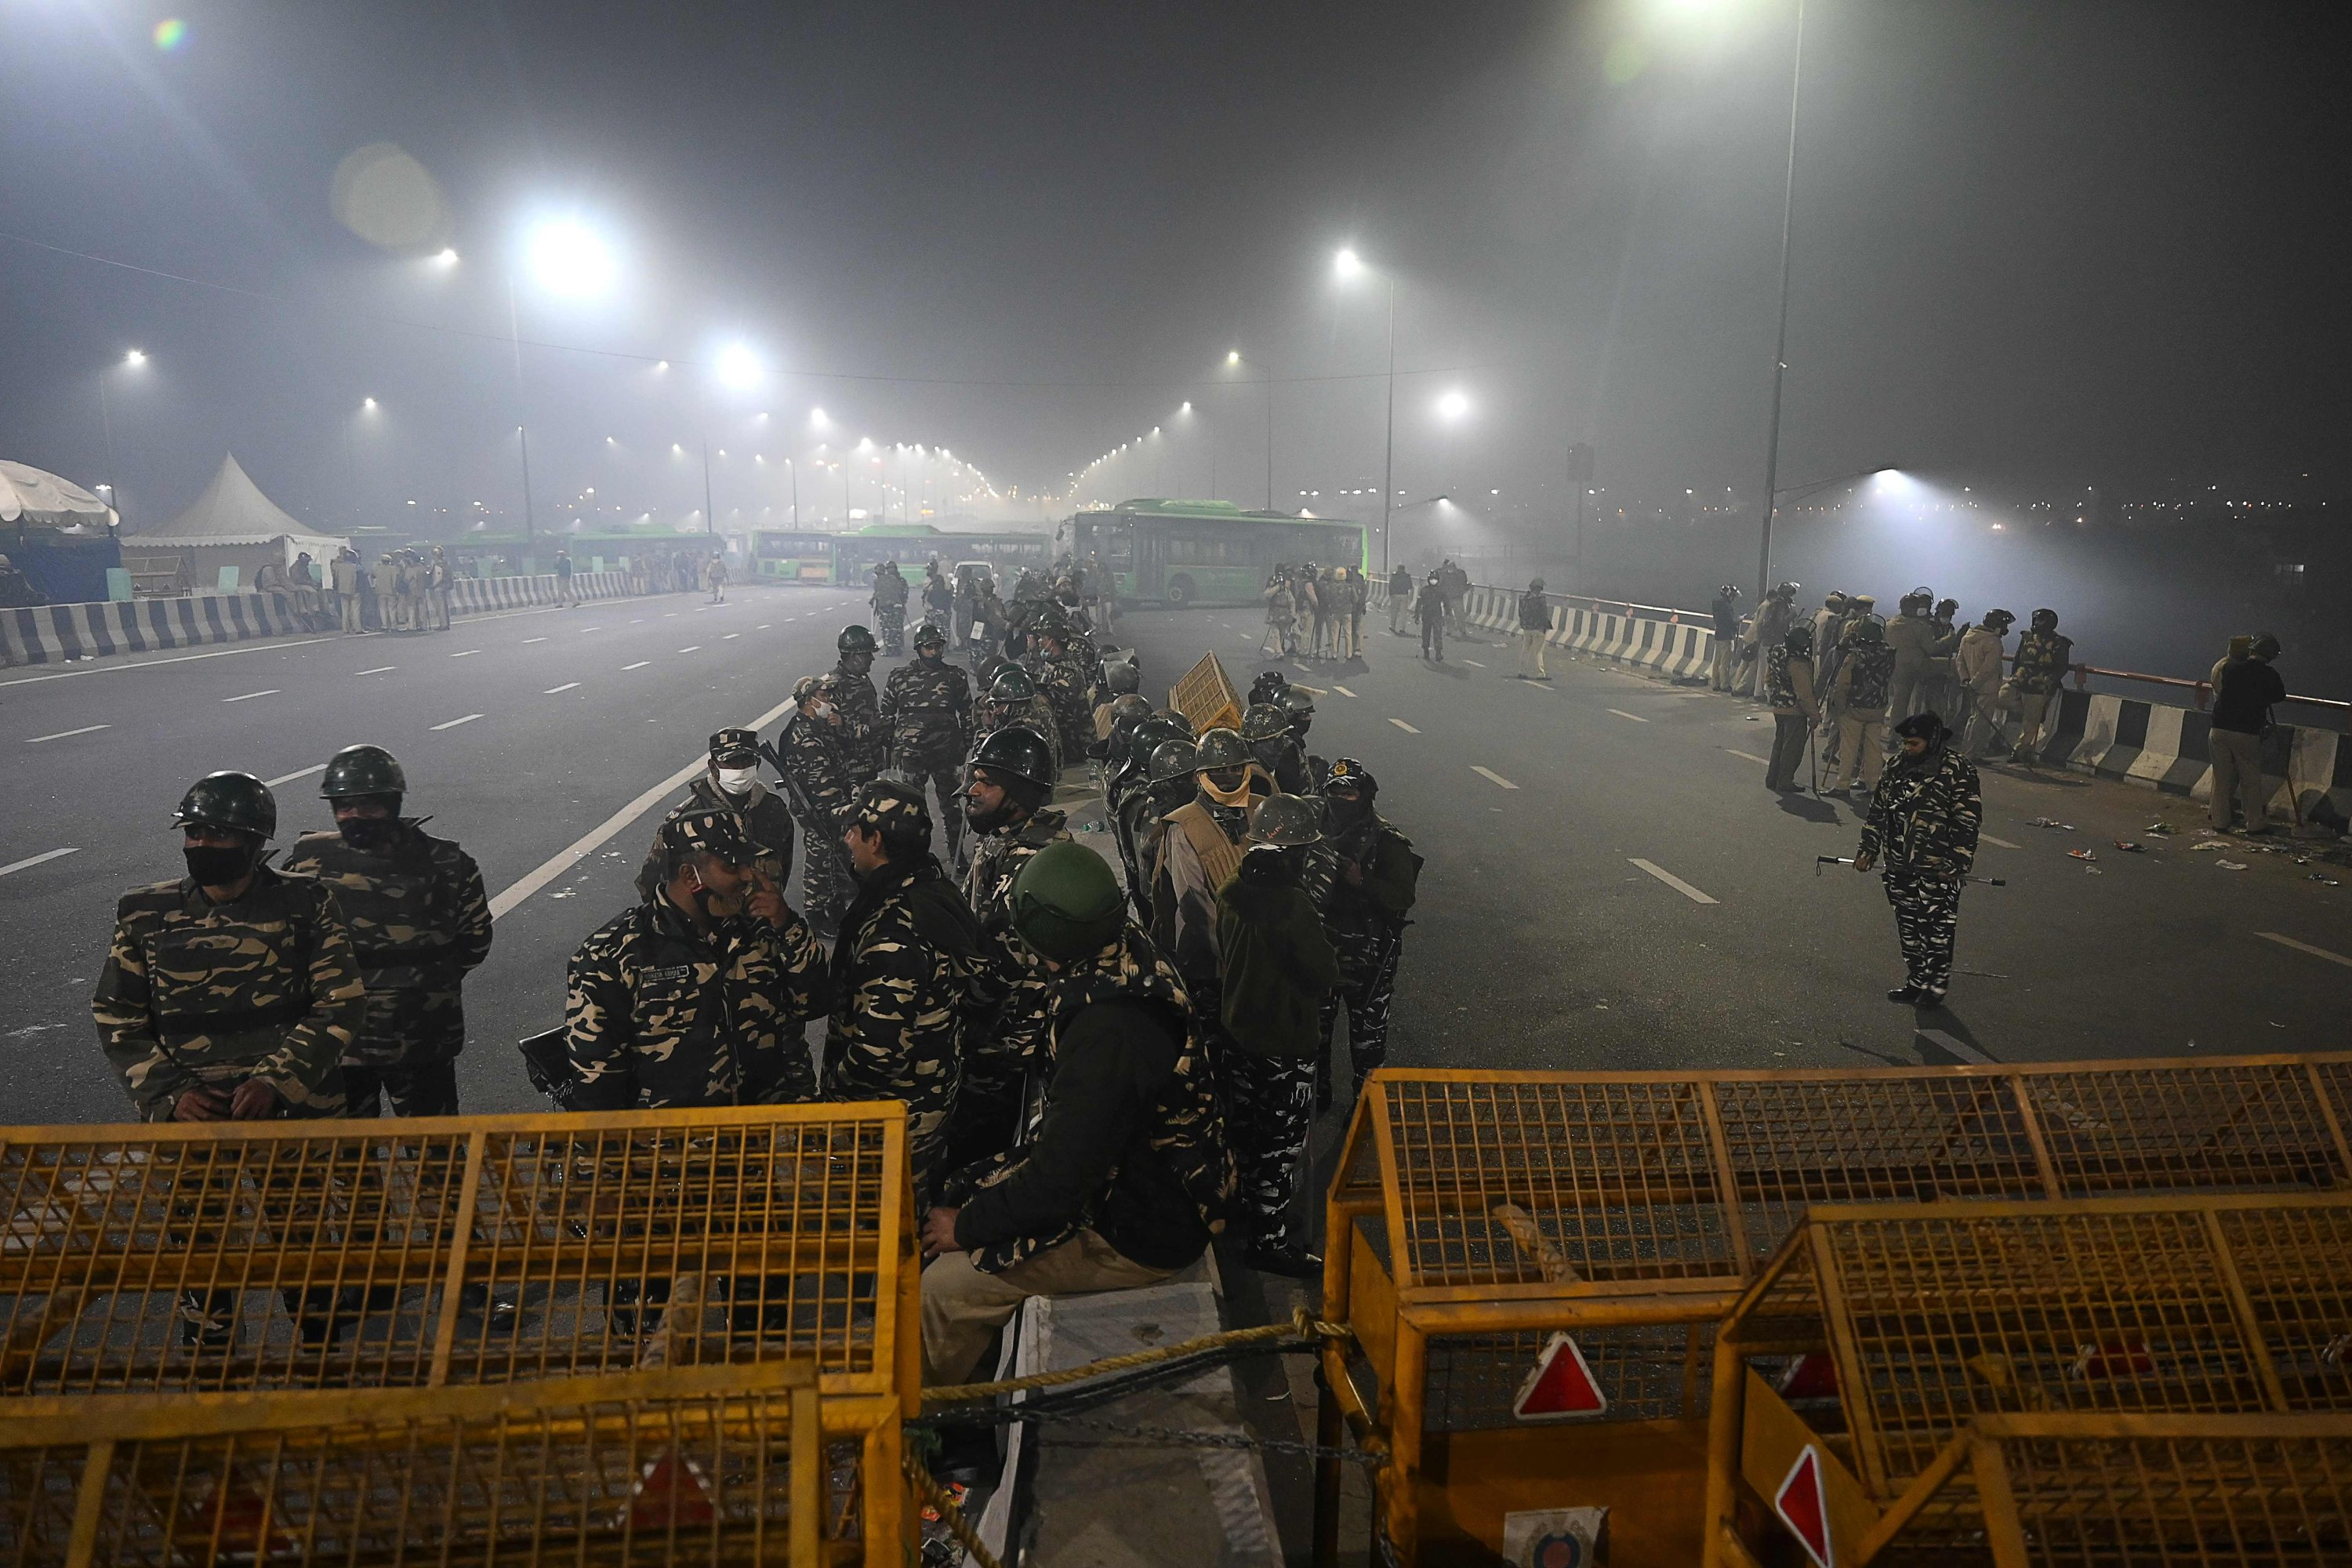 Police personnel stand guard next to barricades along a blocked highway as farmers continue to protest against the agricultural reforms, Ghazipur, India, Jan. 28, 2021. (AFP Photo)